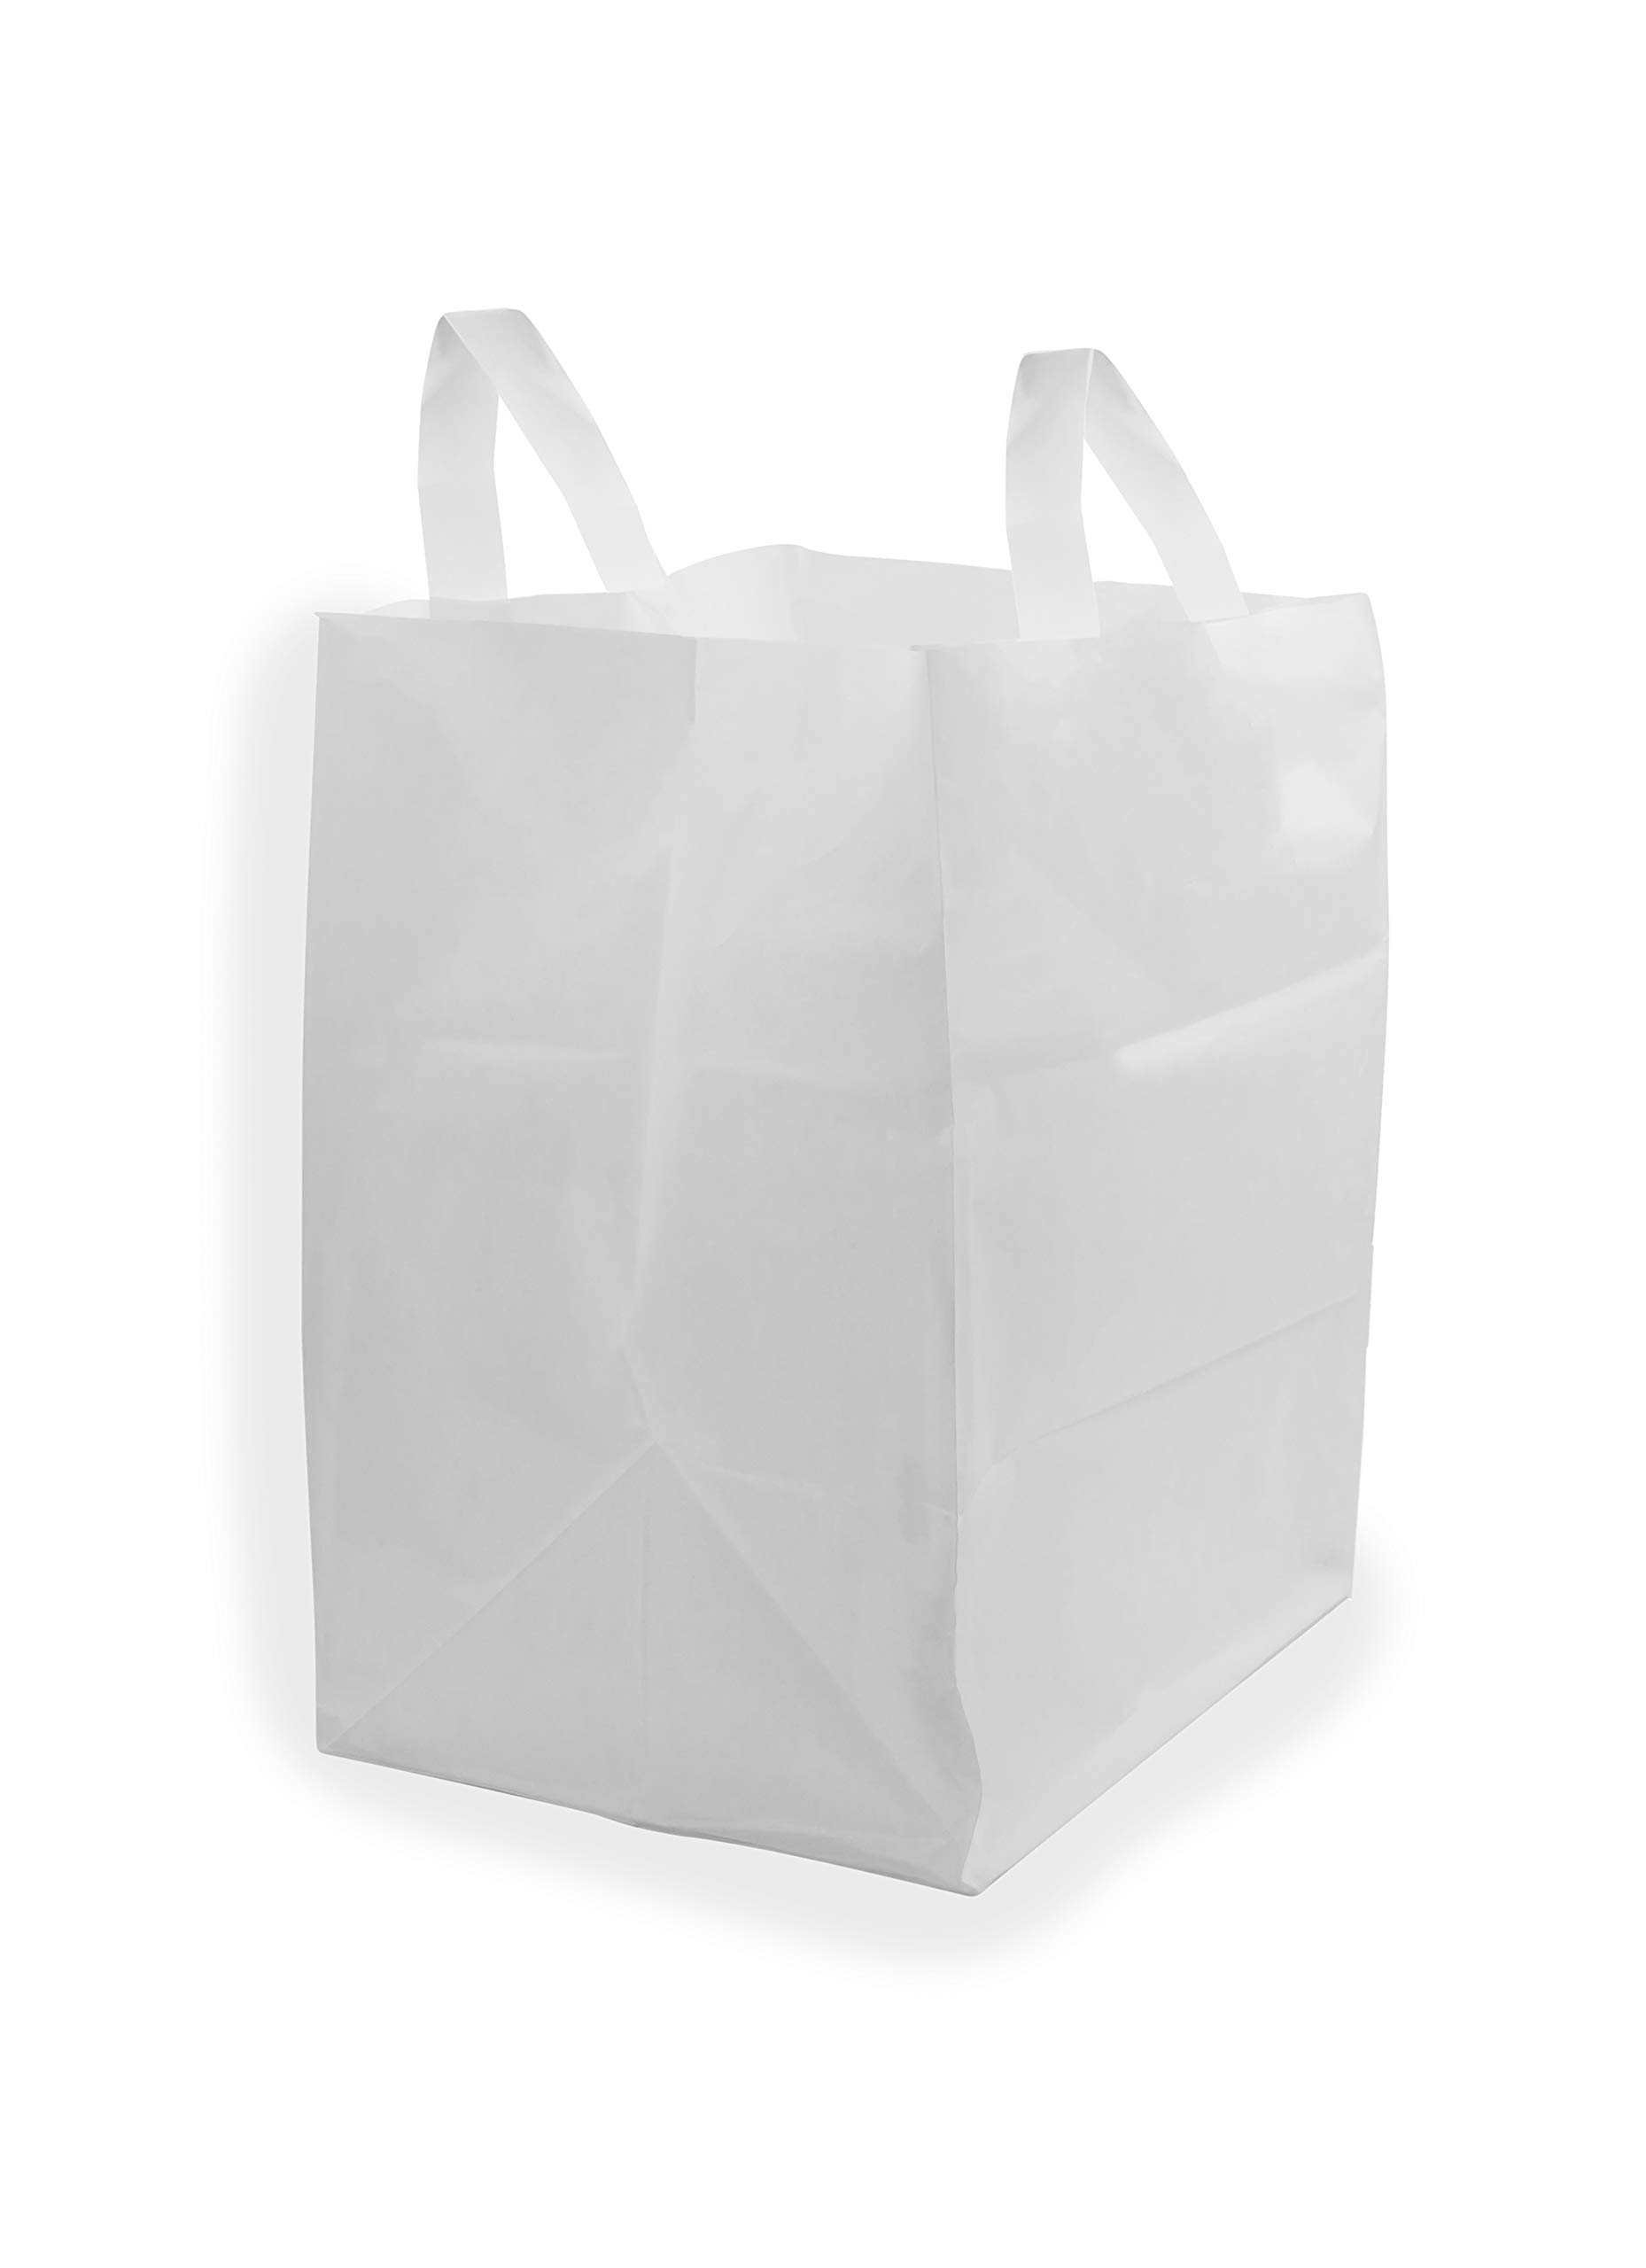 12x10x16'' 250 Pcs. Thick White Plastic Shopping Bags with Handles & Cardboard Bottom, Merchandise Bags, Food Service Bags, Take Out Bags, Gift Bags Bulk